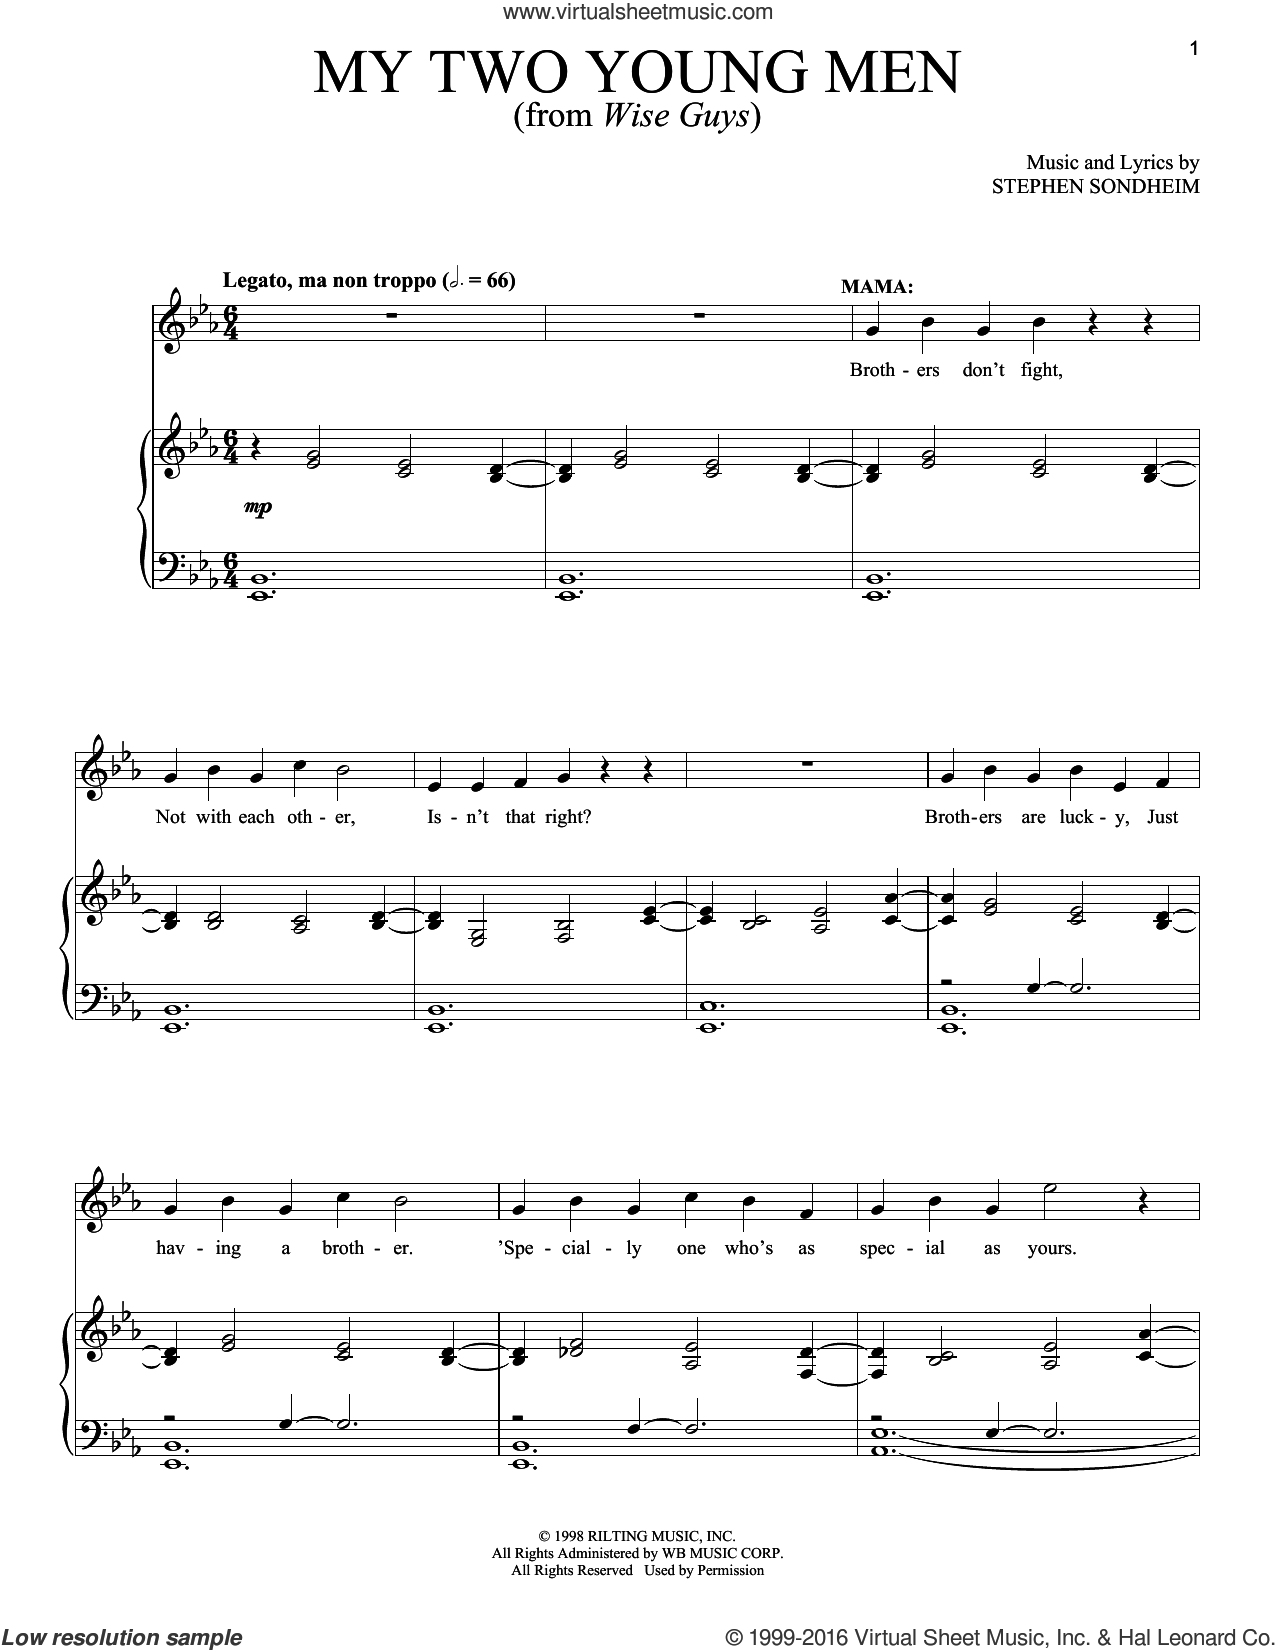 My Two Young Men sheet music for voice and piano by Stephen Sondheim, intermediate skill level